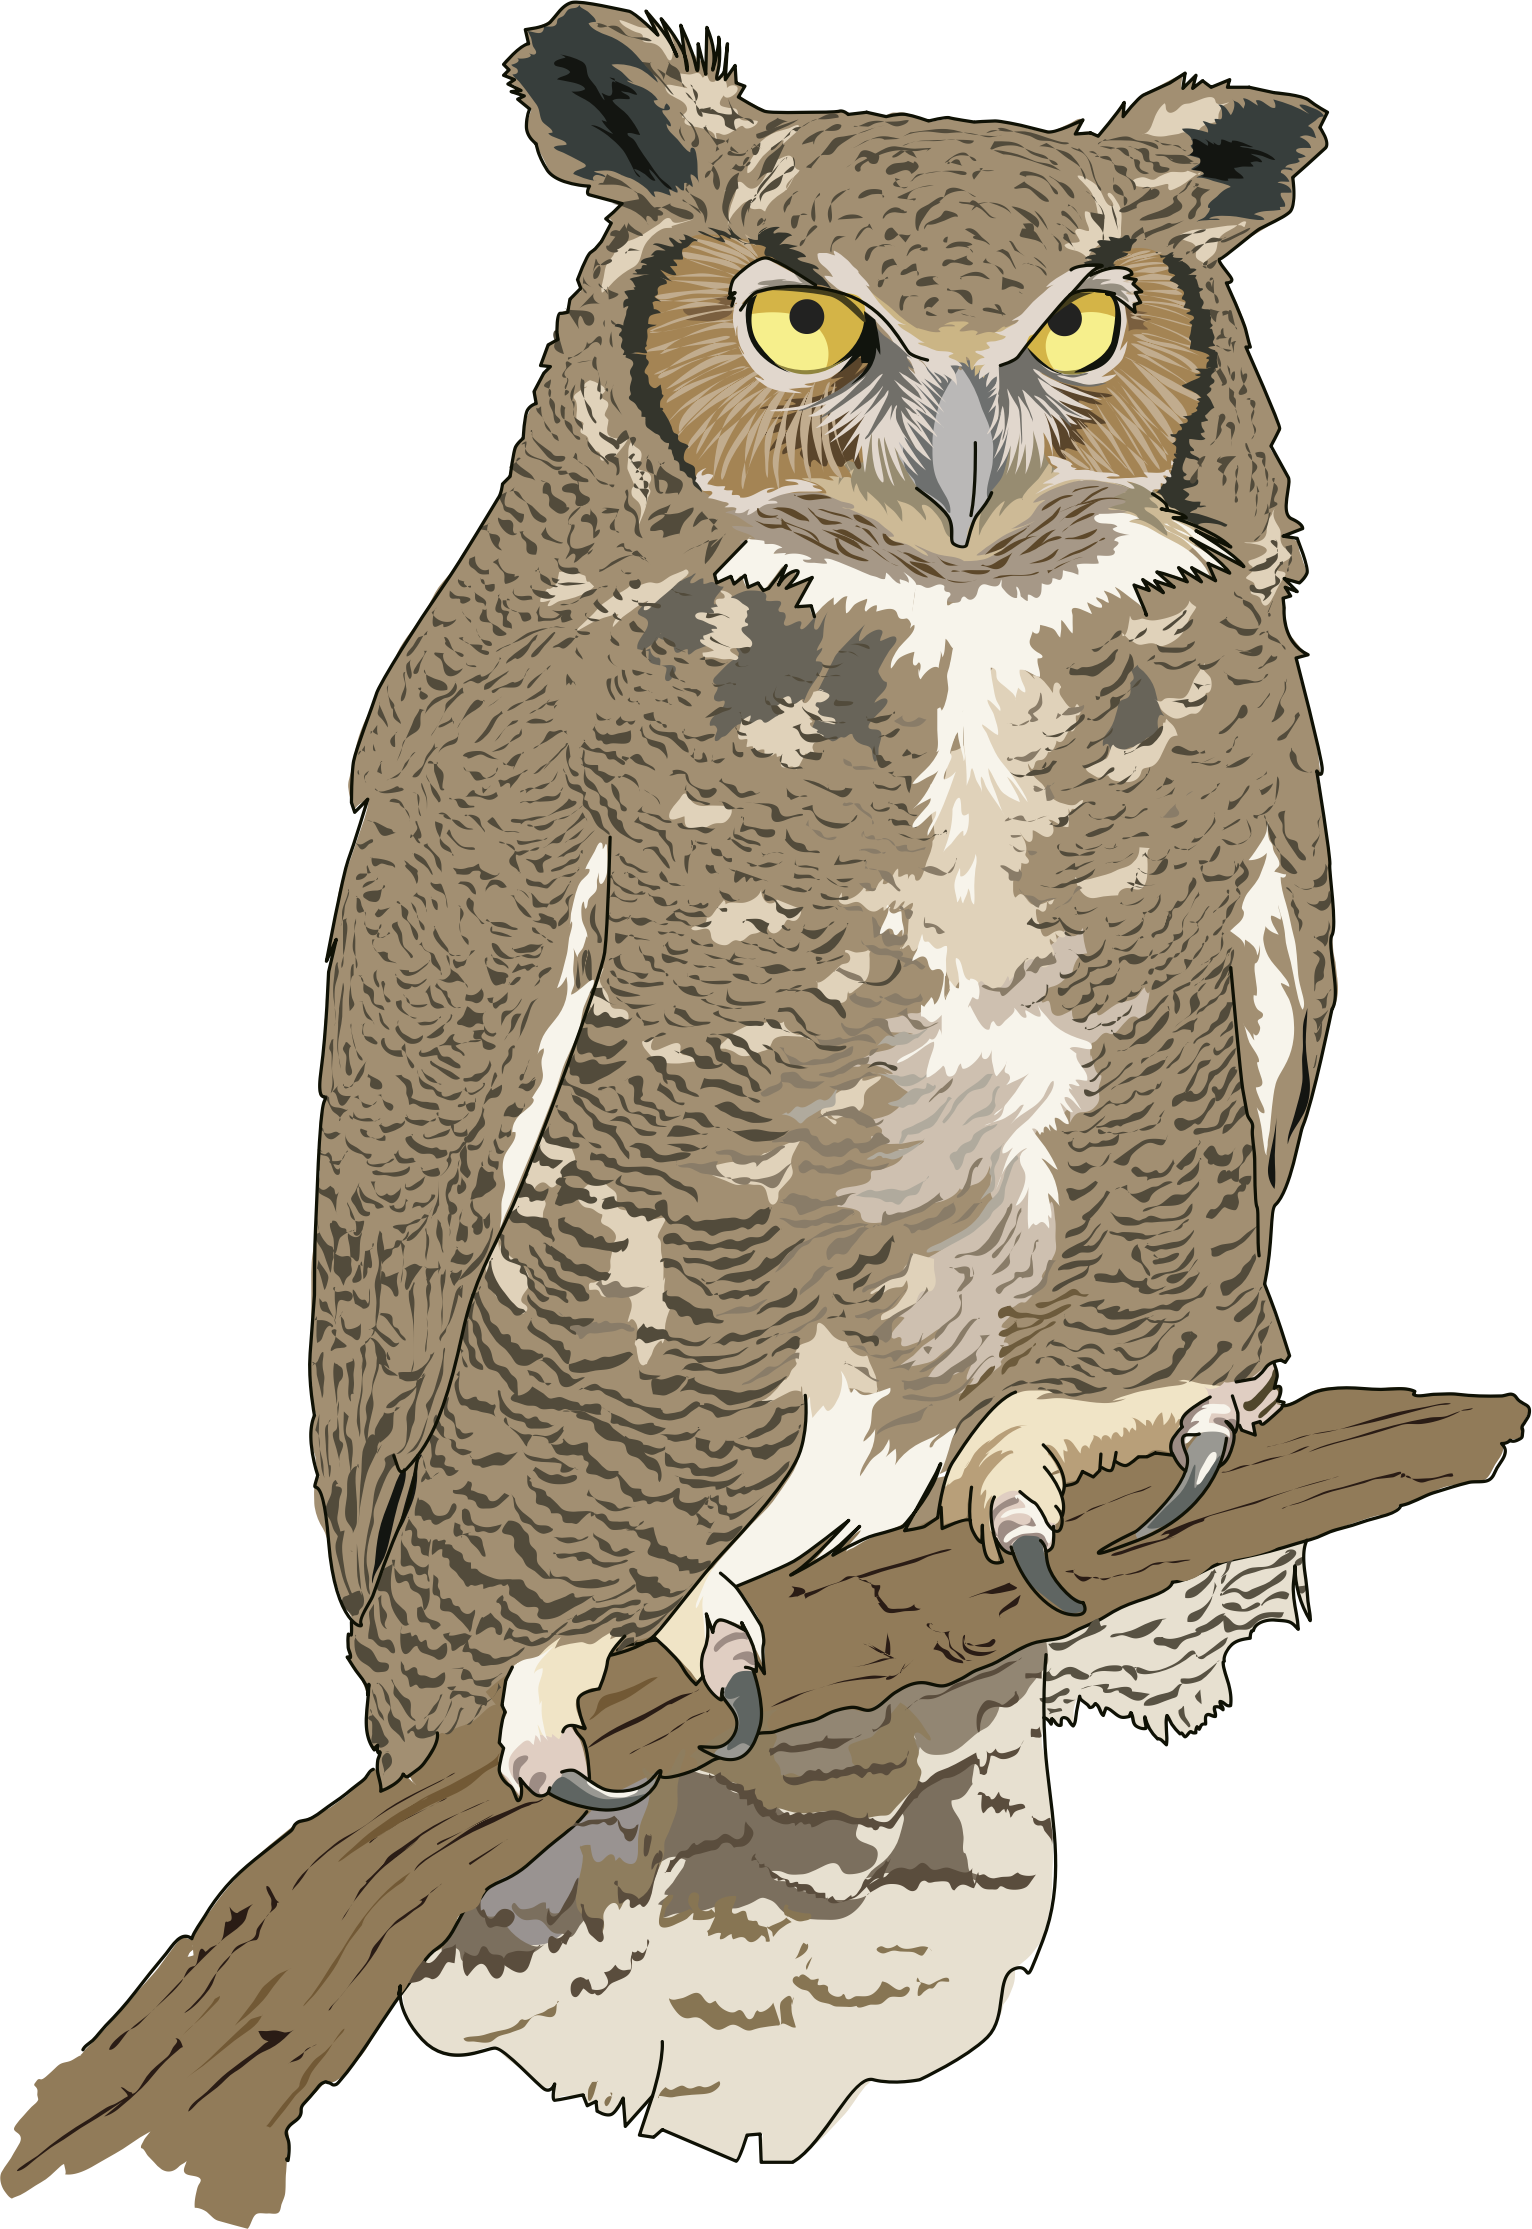 Eagle-owl clipart #18, Download drawings